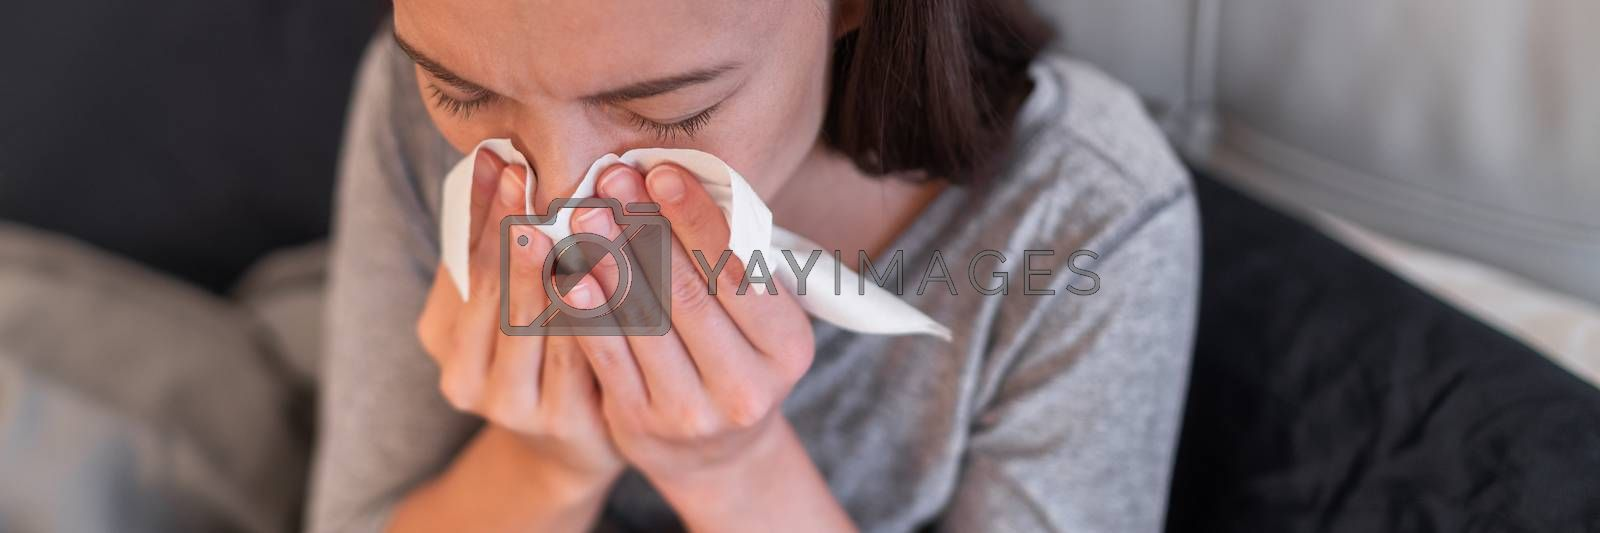 Sick woman feeling unwell at home. Young girl with flu symptoms coughing in tissue covering nose when sneezing as COVID 19 prevention. Panoramic crop by Maridav